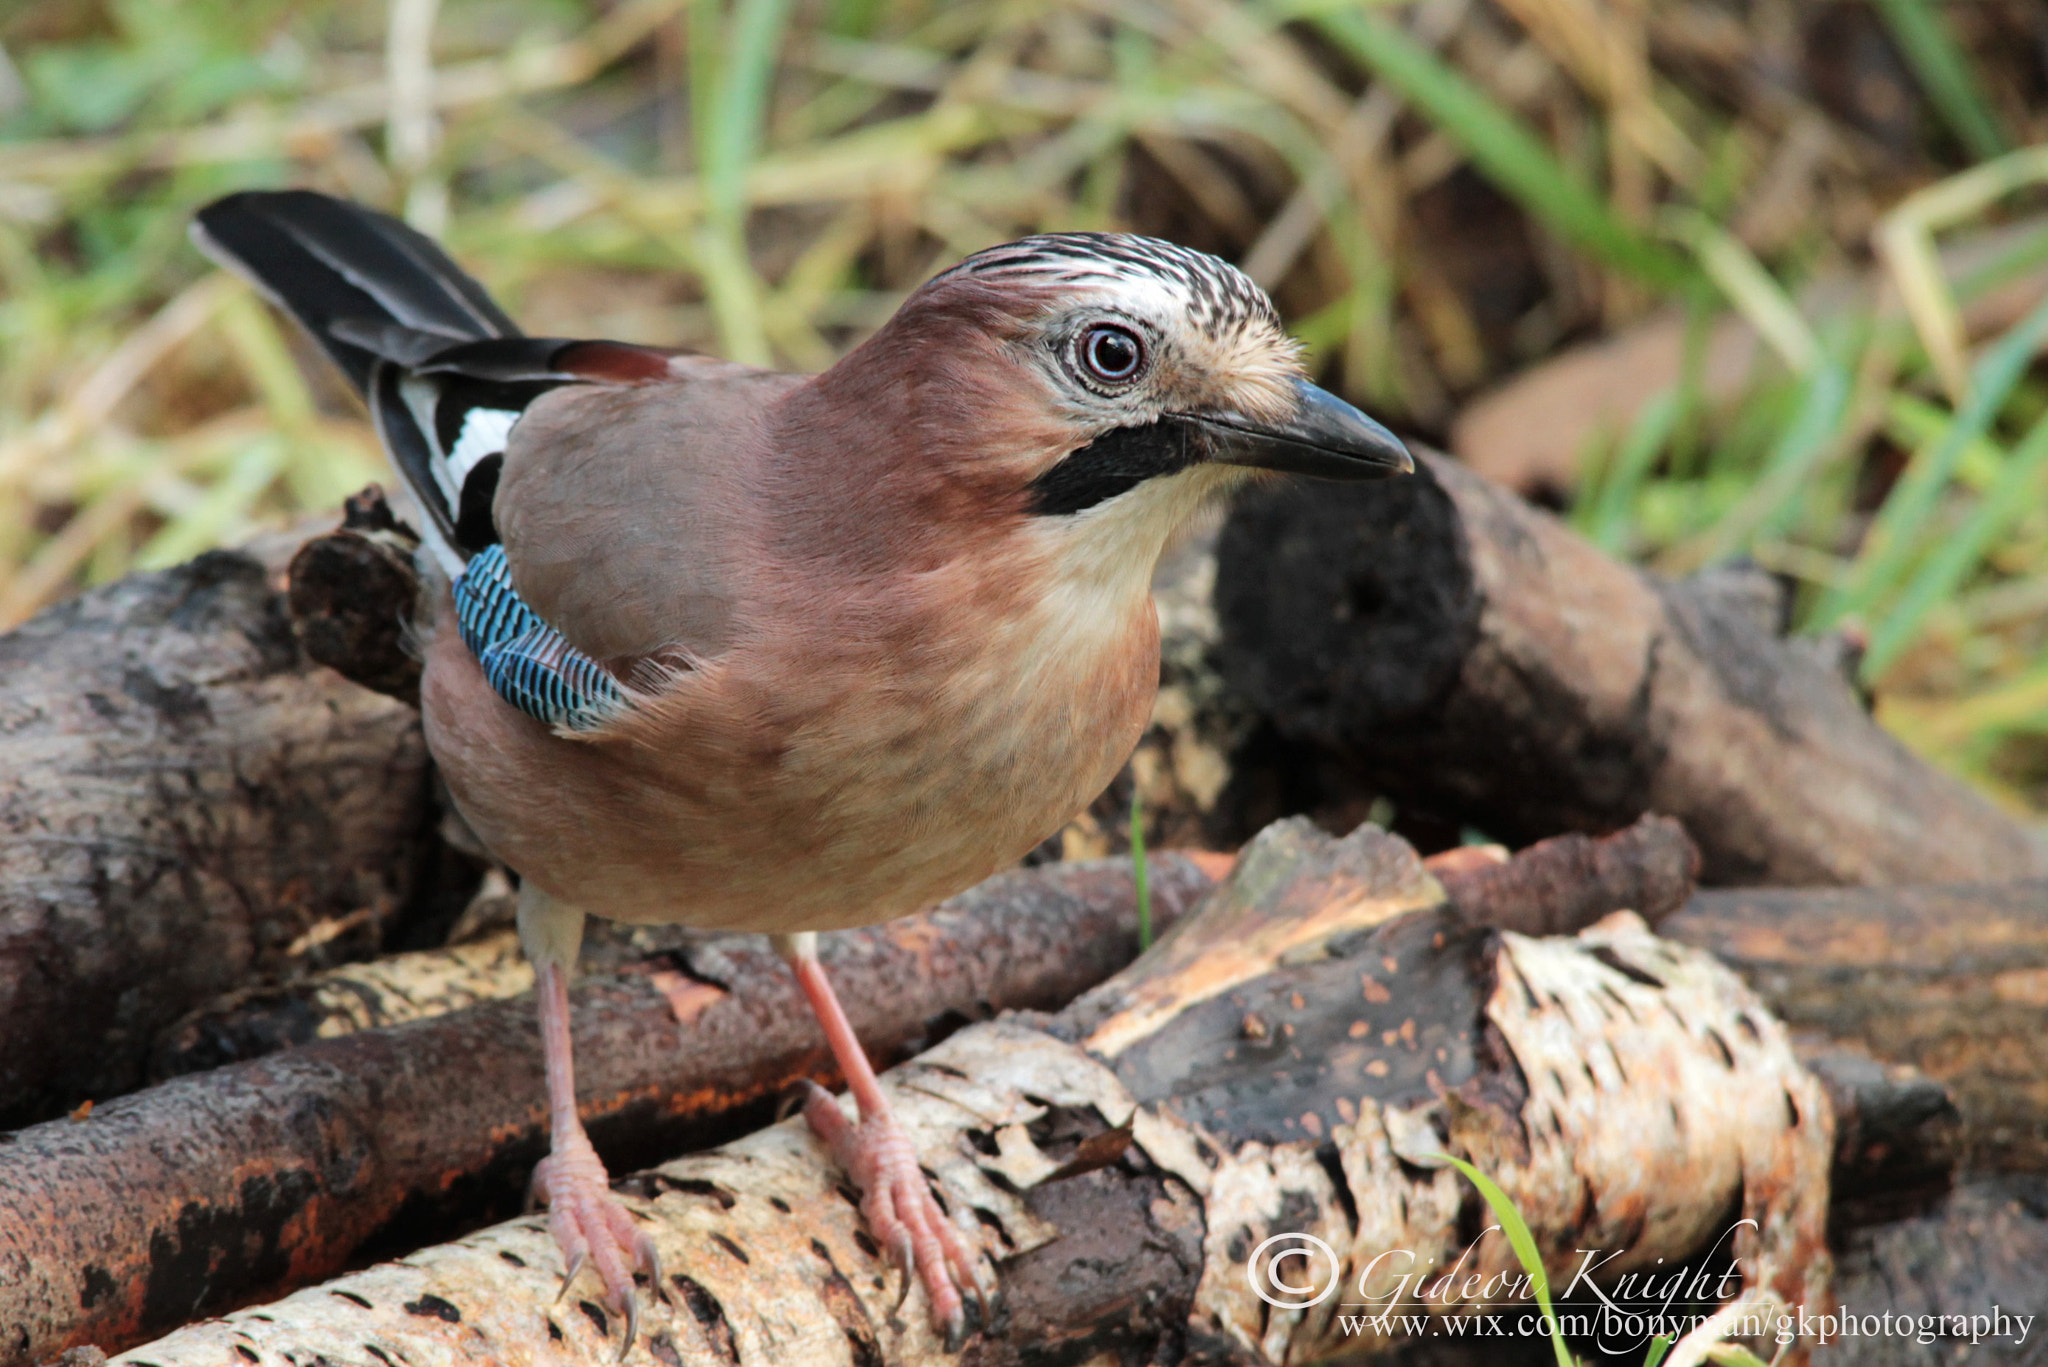 Photograph Jay by Gideon Knight on 500px